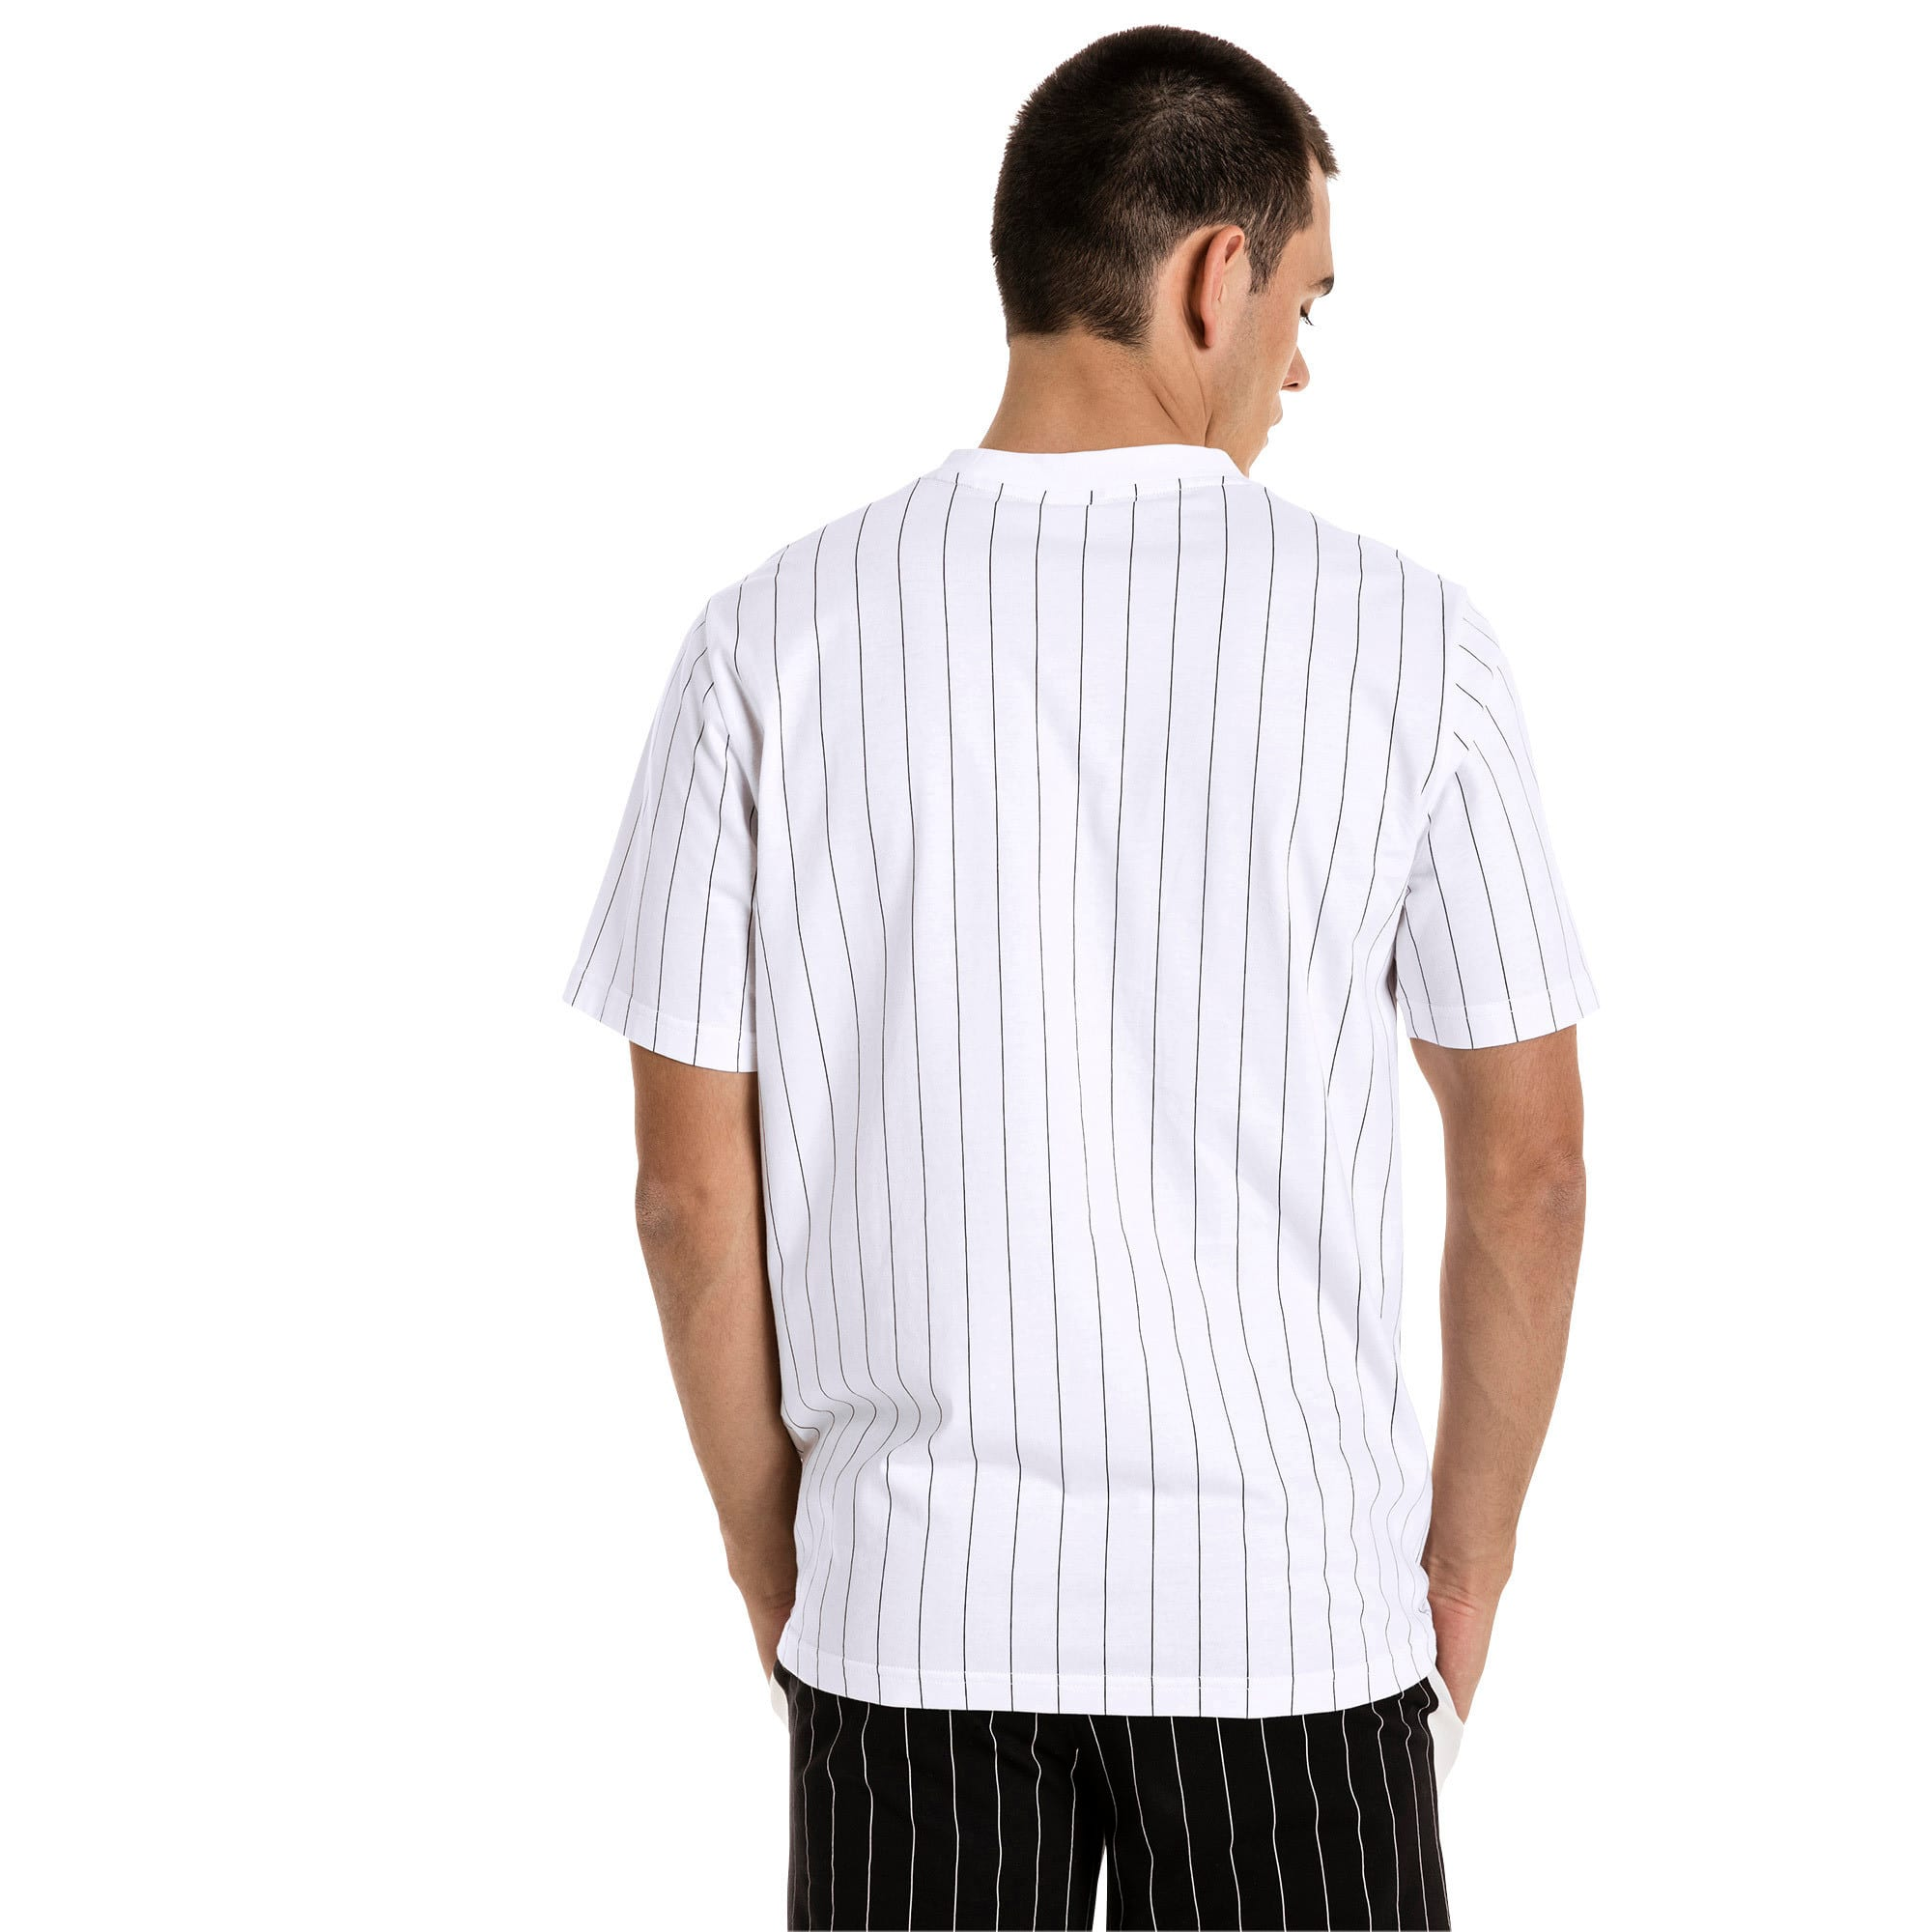 Thumbnail 3 of Archive Pinstripe Herren T-Shirt, Puma White, medium